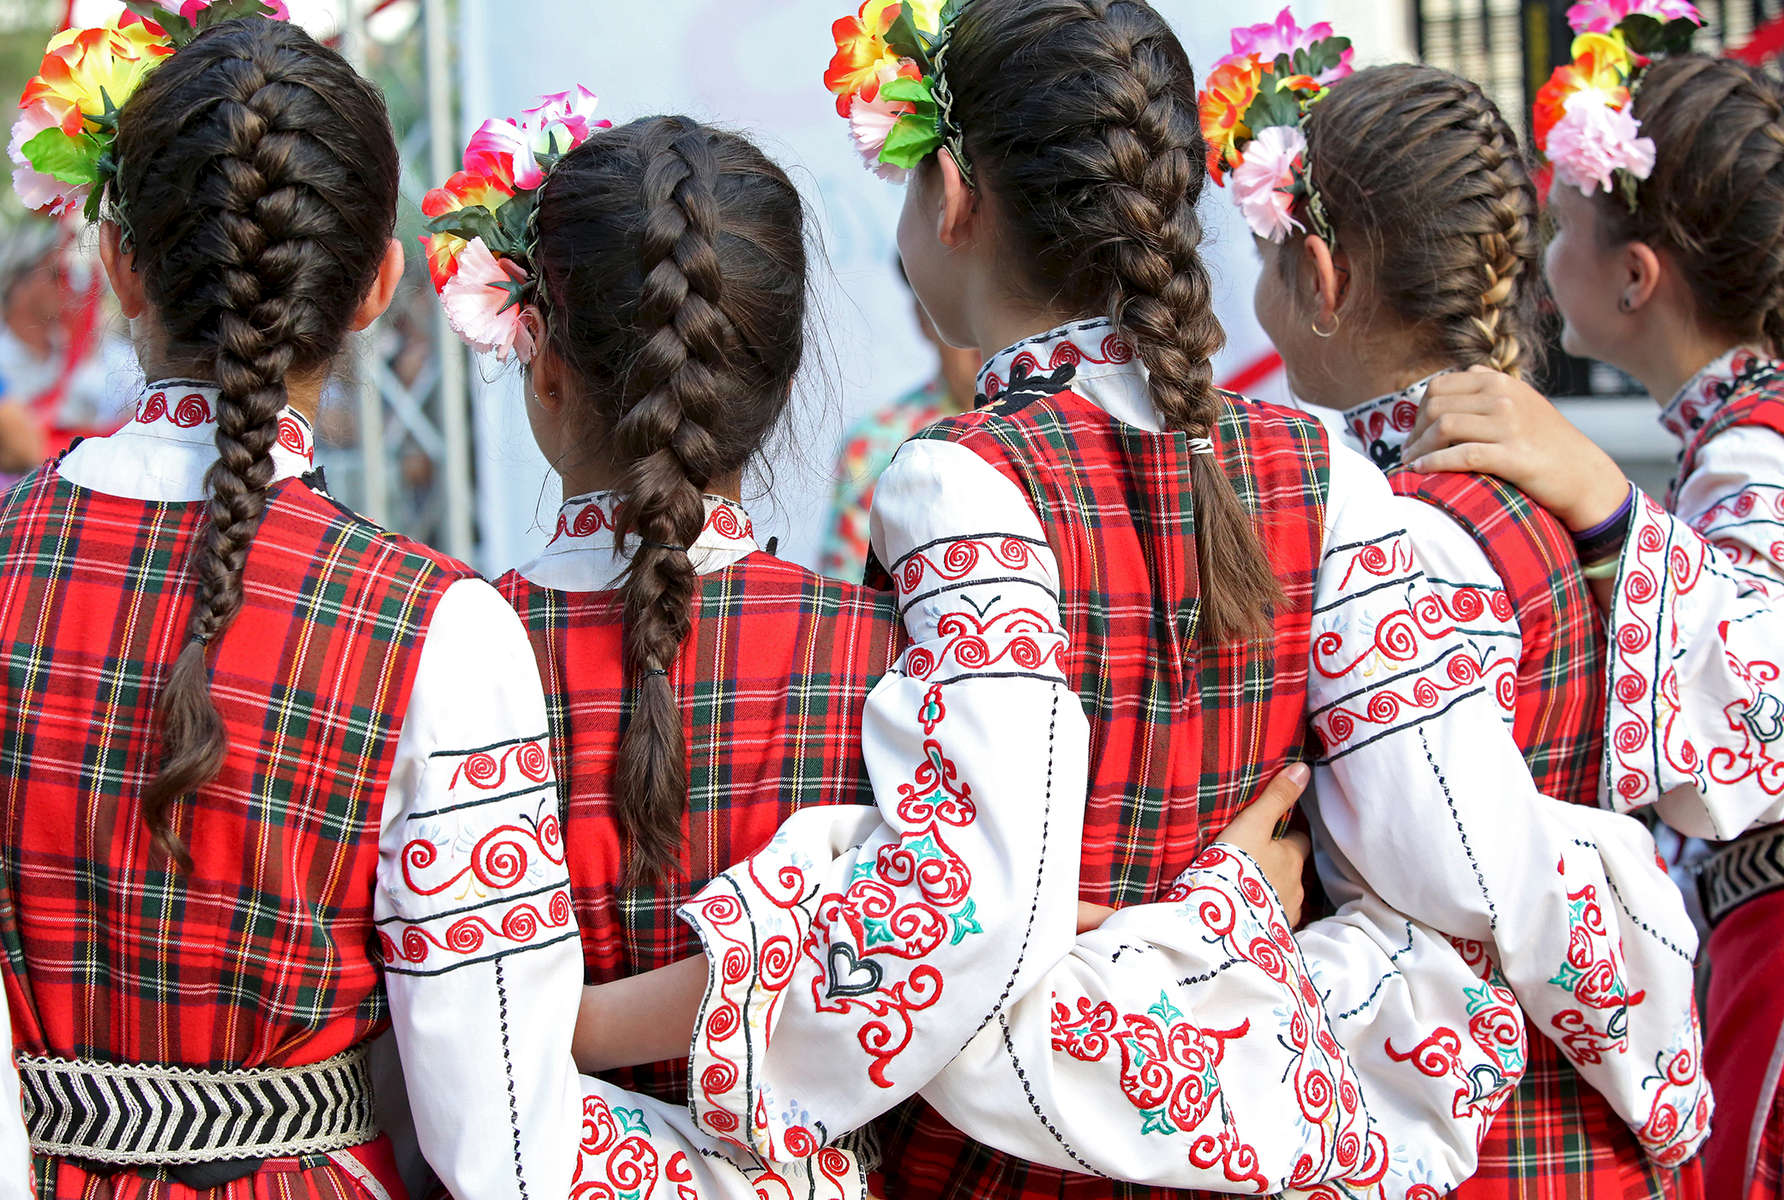 Members of the dance ensemble Arsenal, from Kazanlak, Bulgaria, prepare to dance on stage during an International Folklore Festival on June 02, 2018, the second day of the three-day Rose Festival in Kazanlak, a town situated in the Rose Valley of Bulgaria. The festival celebrated 115 years in 2018.  Photo by: Yana Paskova for National Geographic Traveler